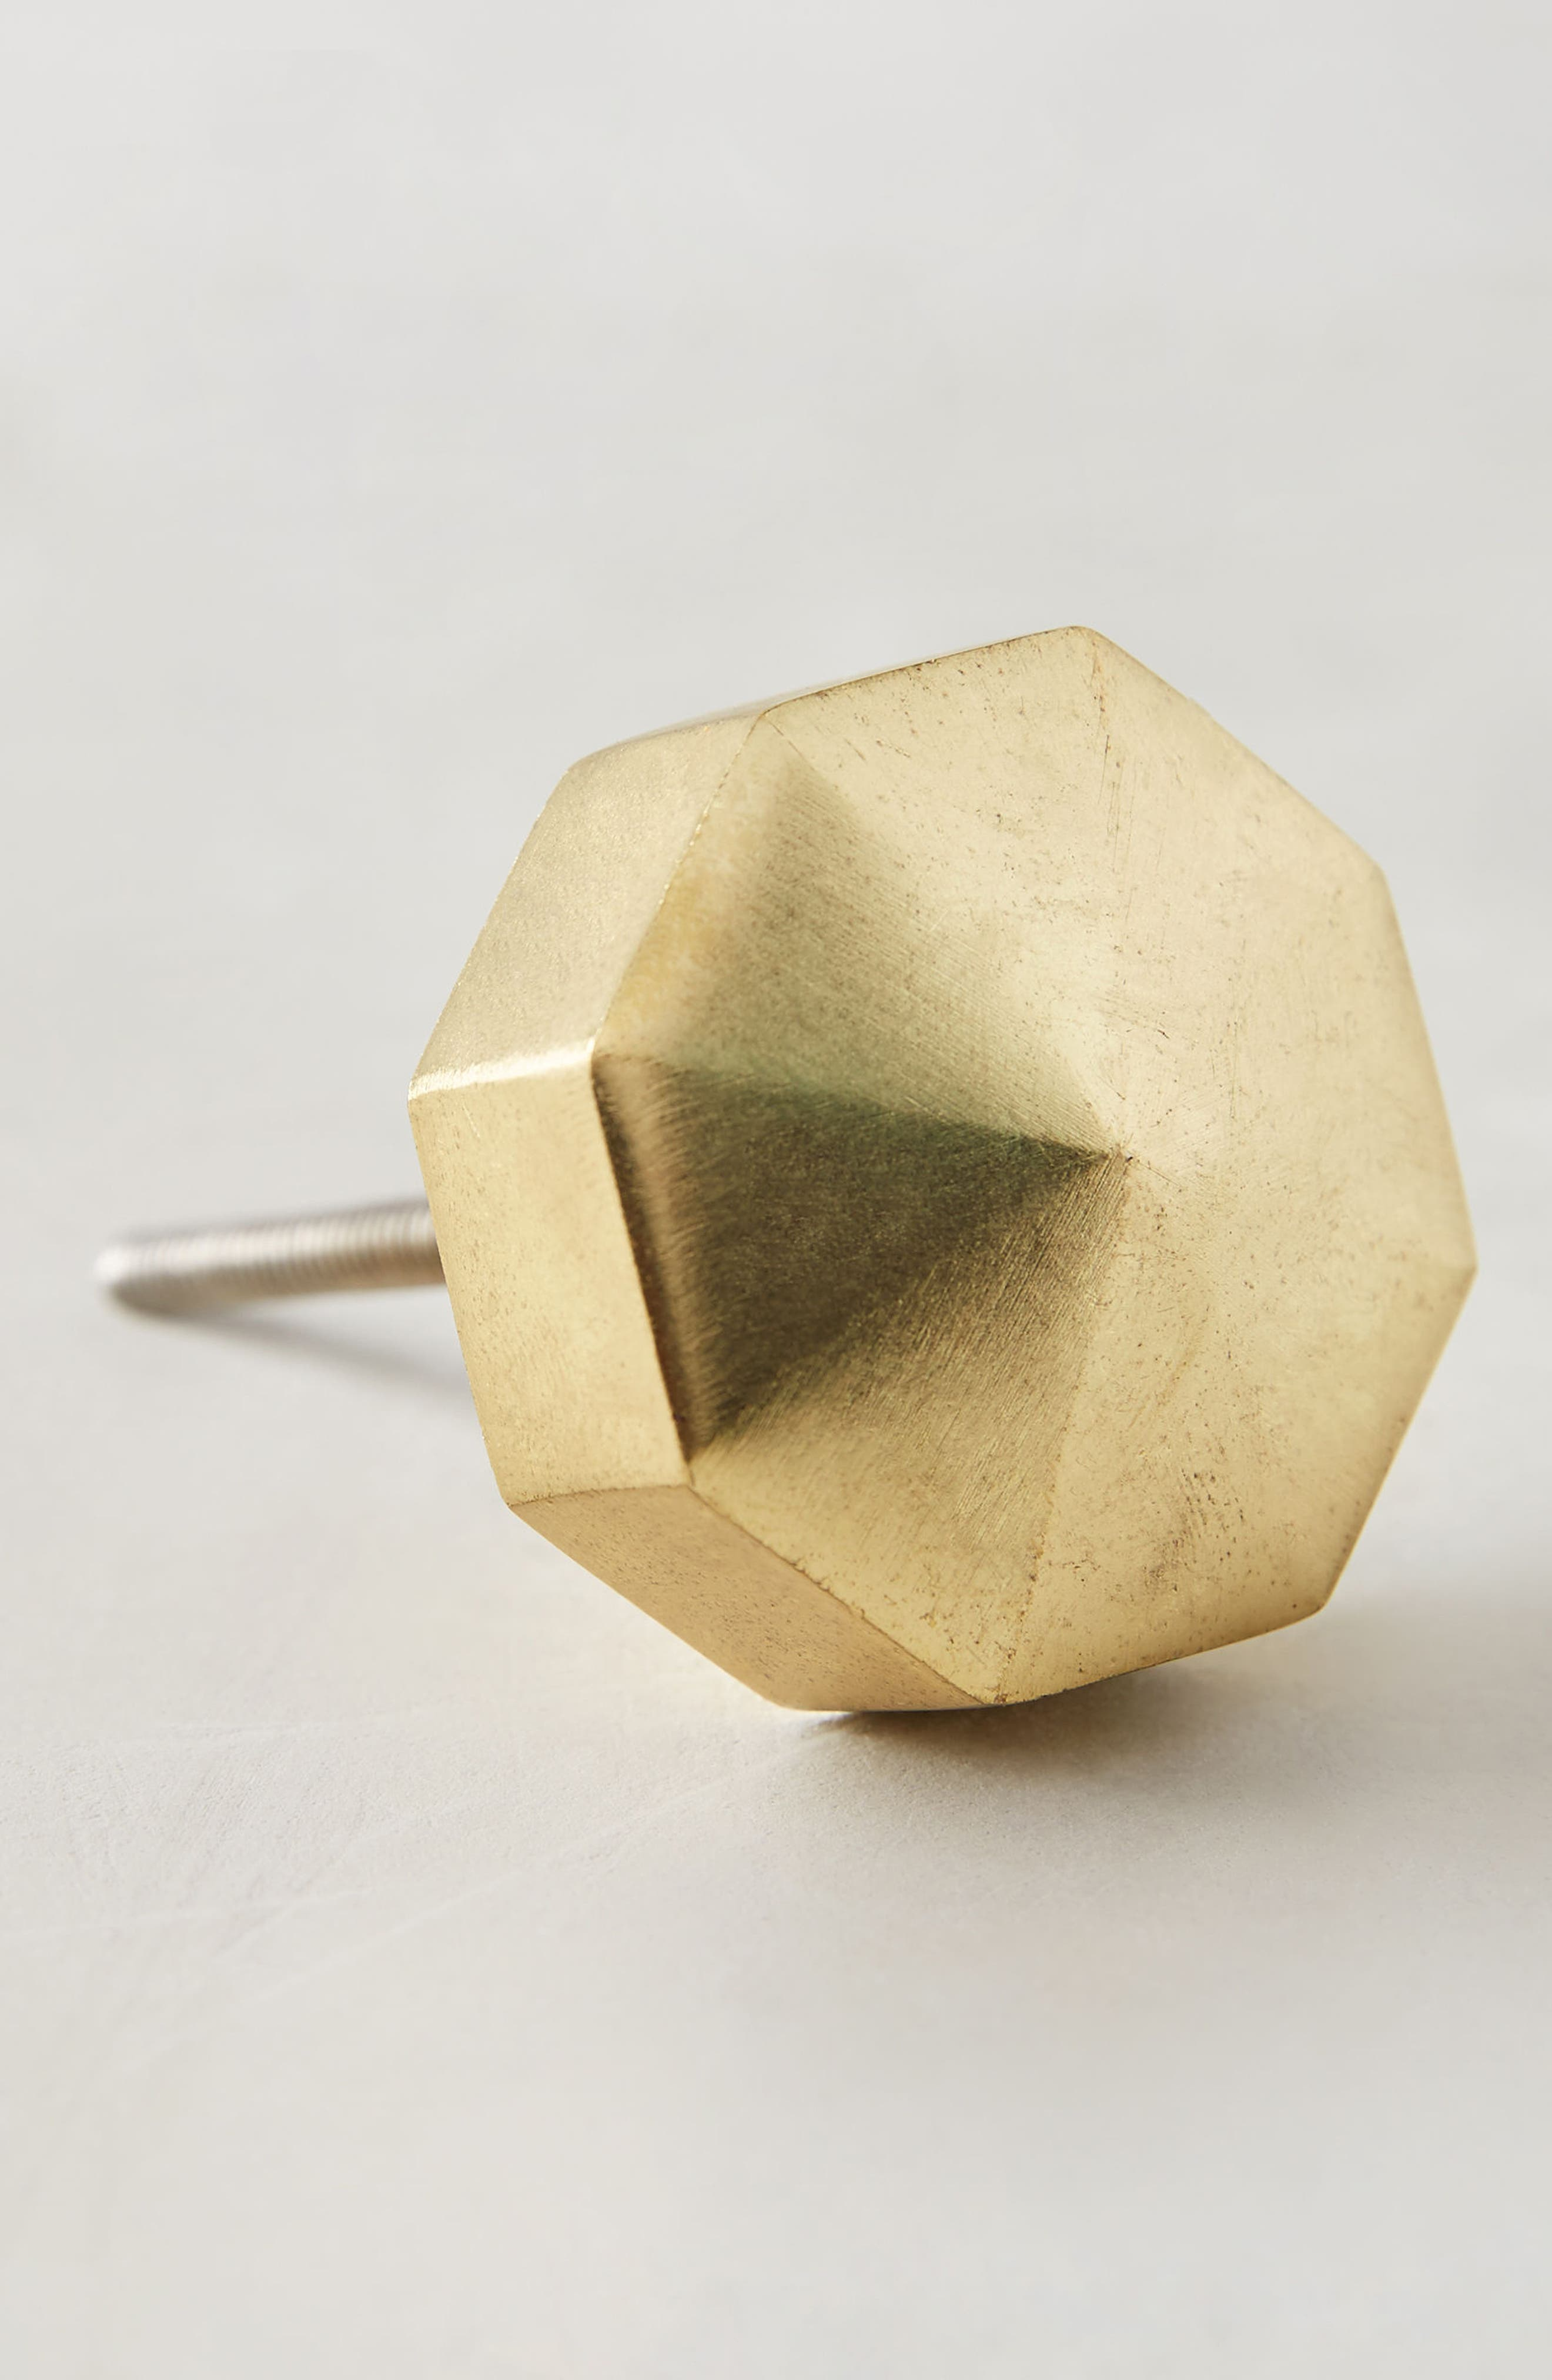 Faceted Ory Knob,                             Alternate thumbnail 2, color,                             220